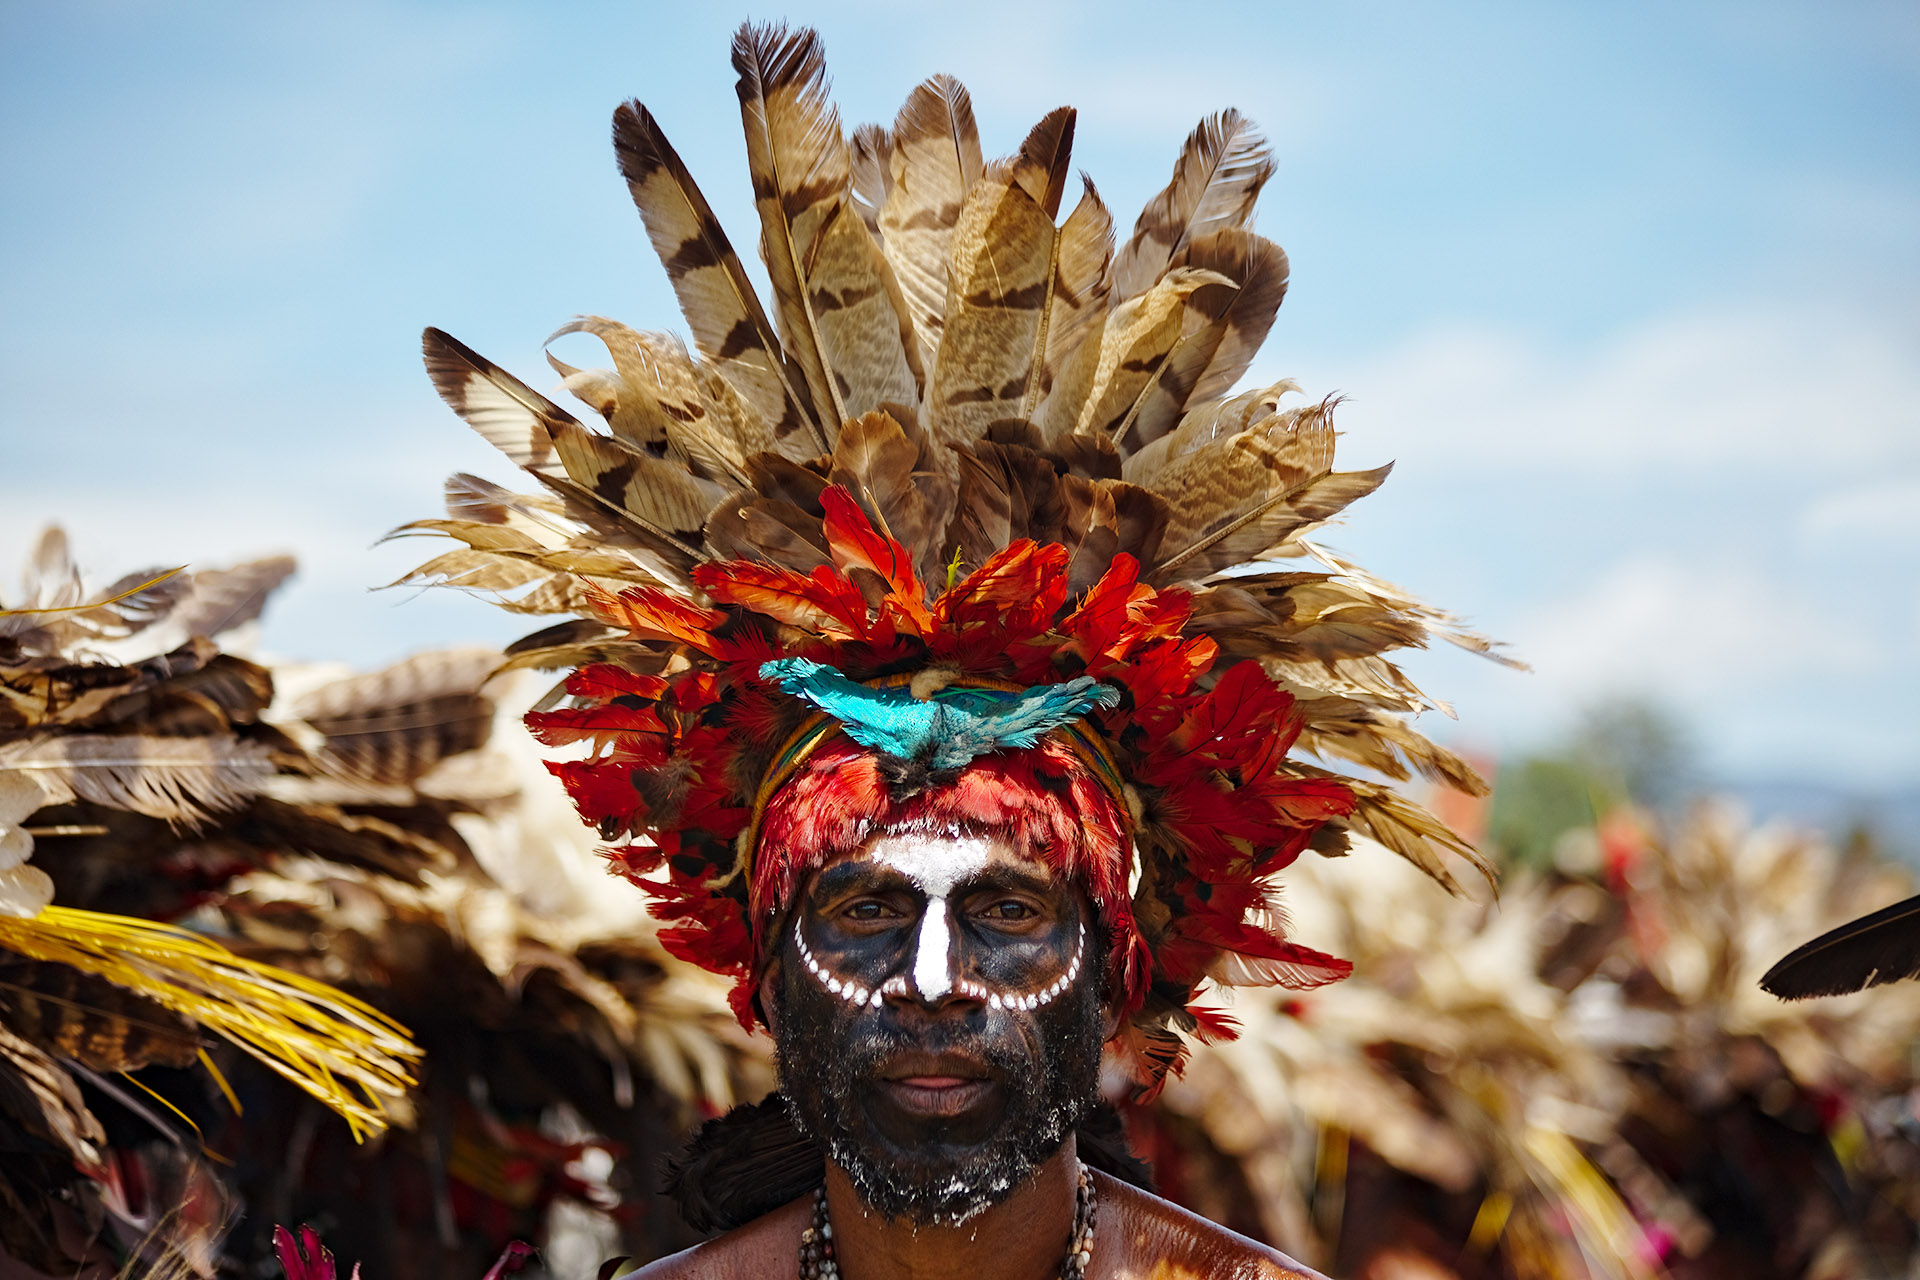 papua new guinea essay Discuss the traditional place of women in papua new guinea society and the changes taking place in contemporary papua new guinea the trobrianders of papua new guinea essaytrobrianders of.